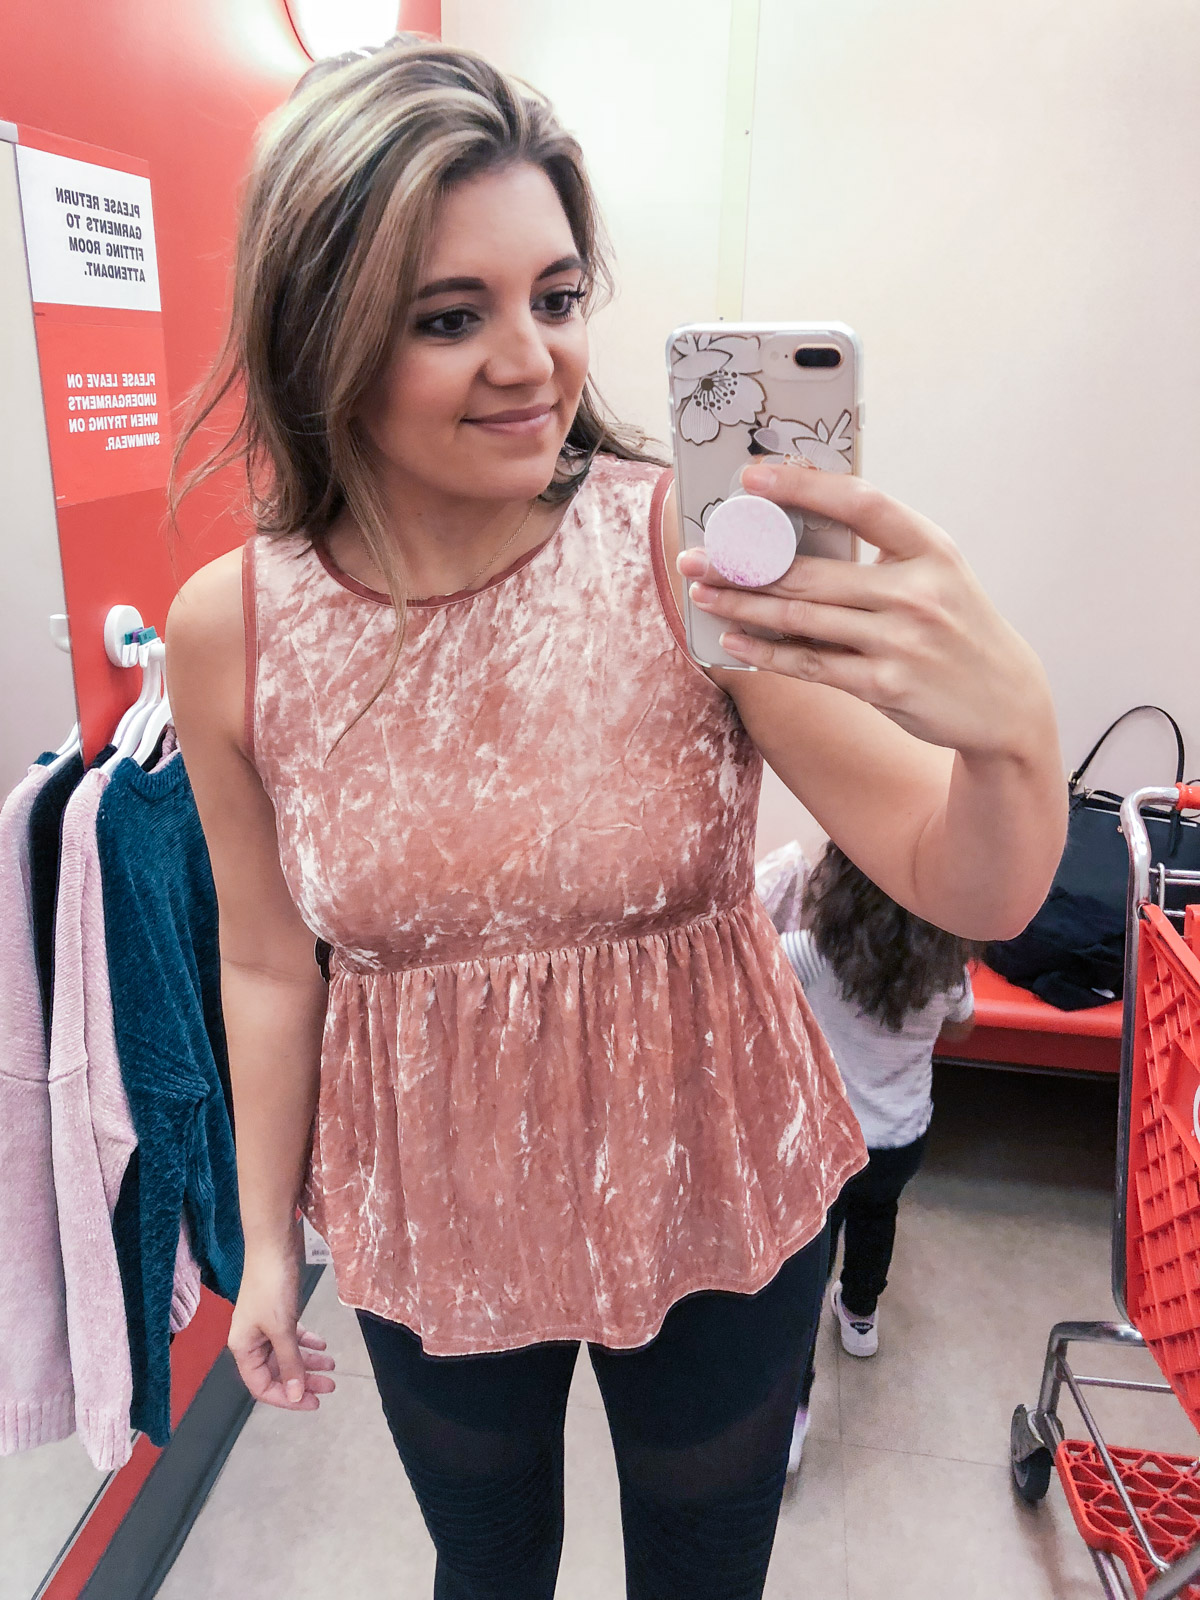 target reviews - dressing room reviews target | For more dressing room reviews, check out bylaurenm.com!